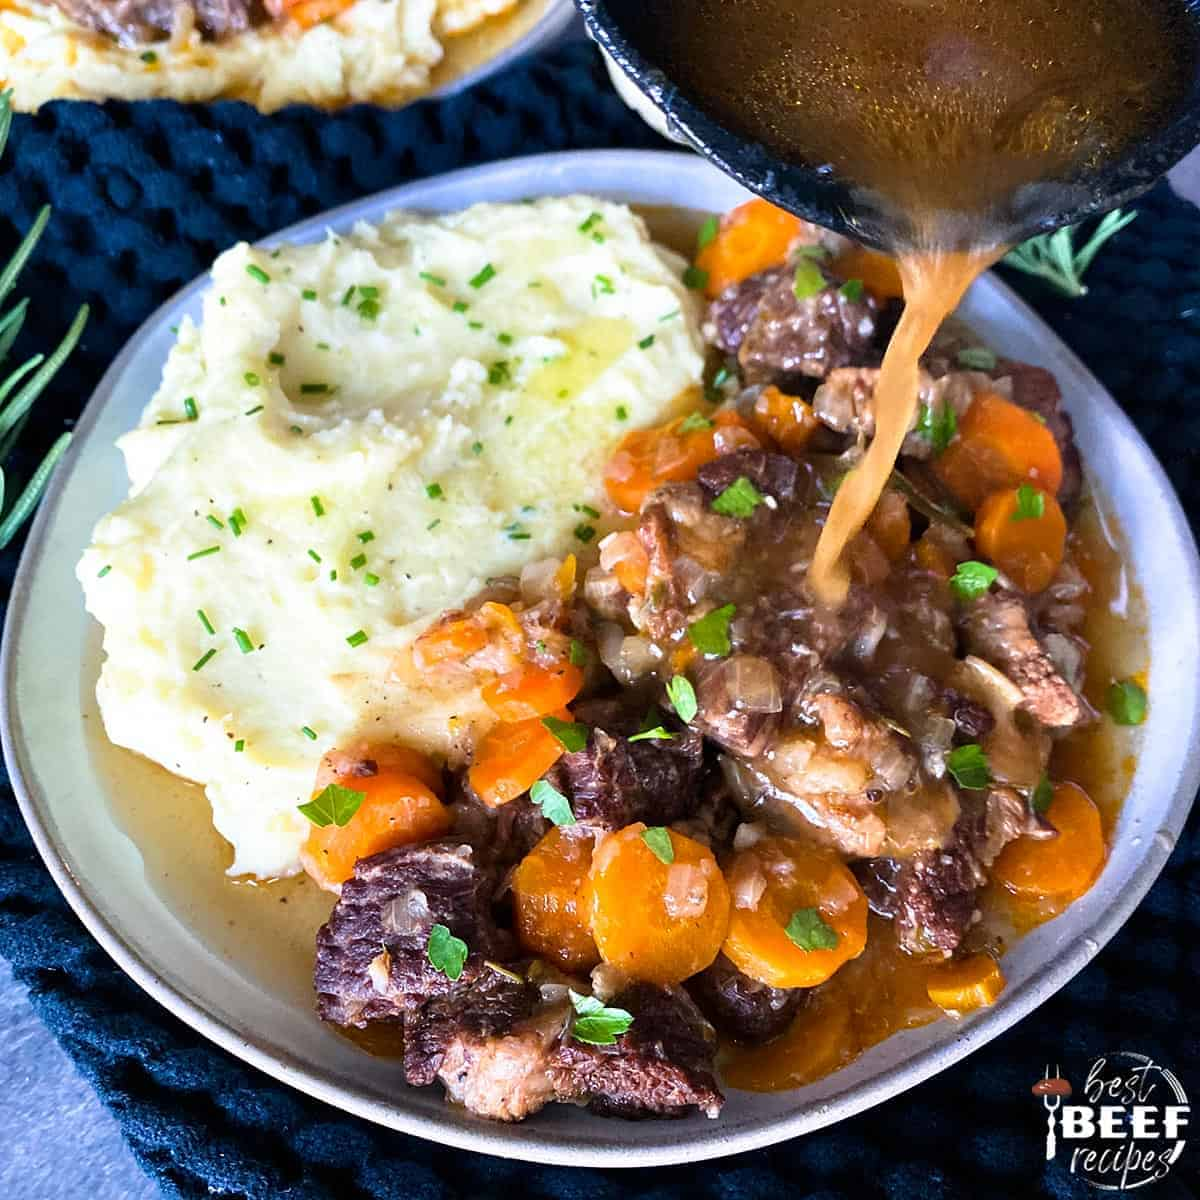 Pouring sauce over beef short ribs on plate with mashed potatoes